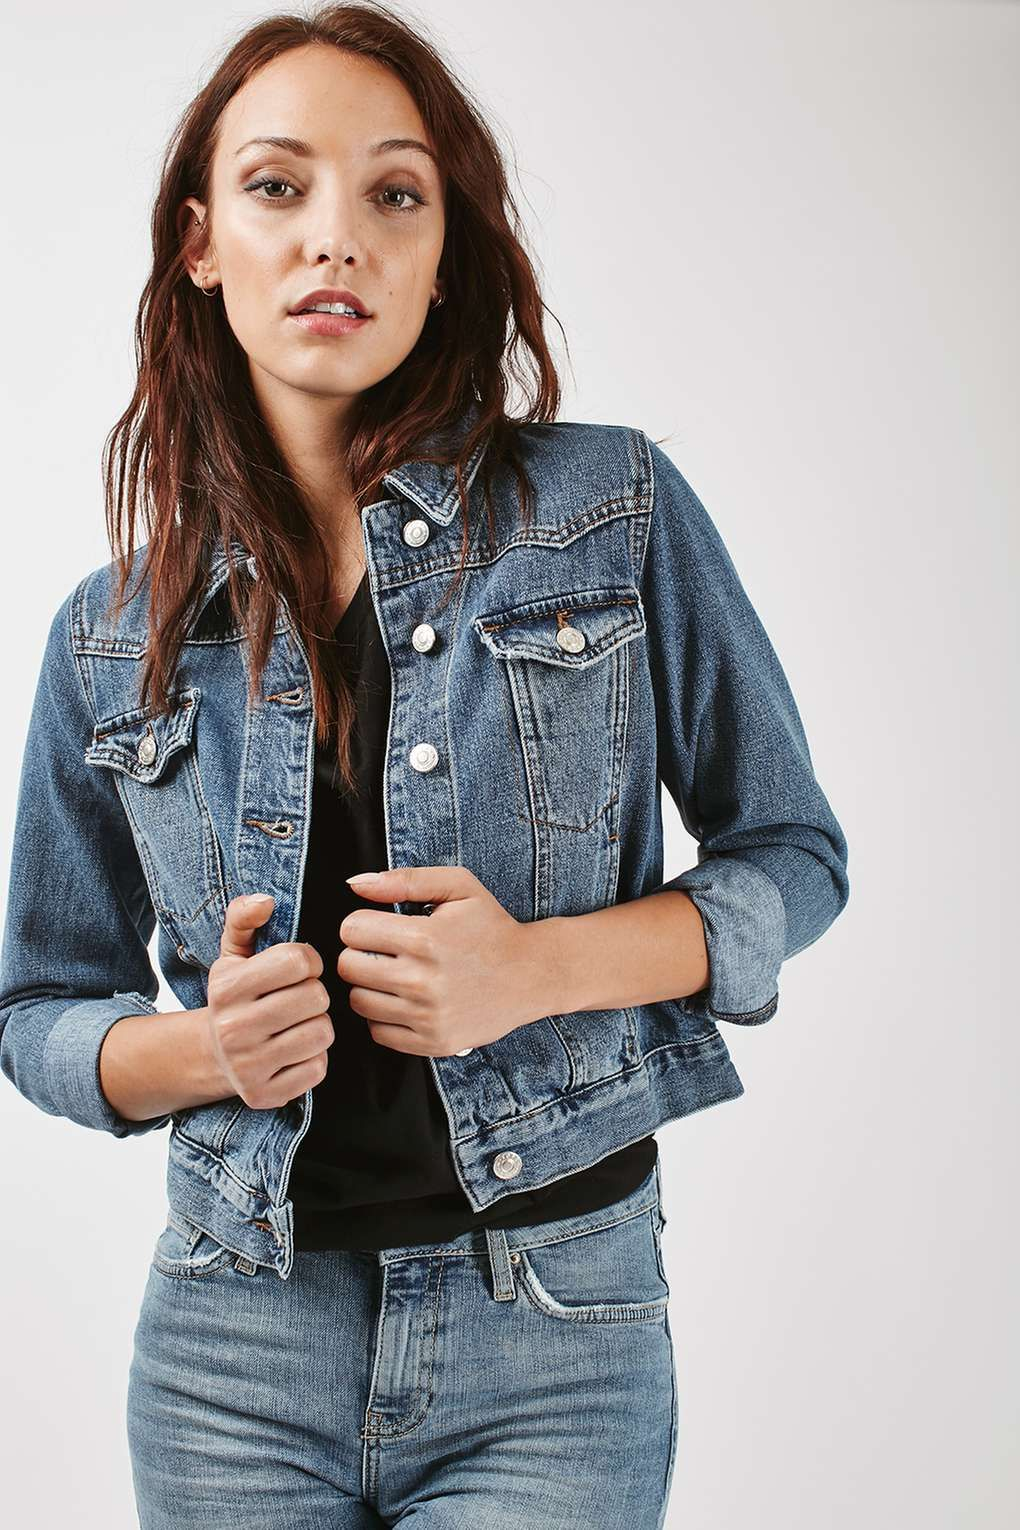 Best Jean Jacket For Your Body Denim Jackets For Fall